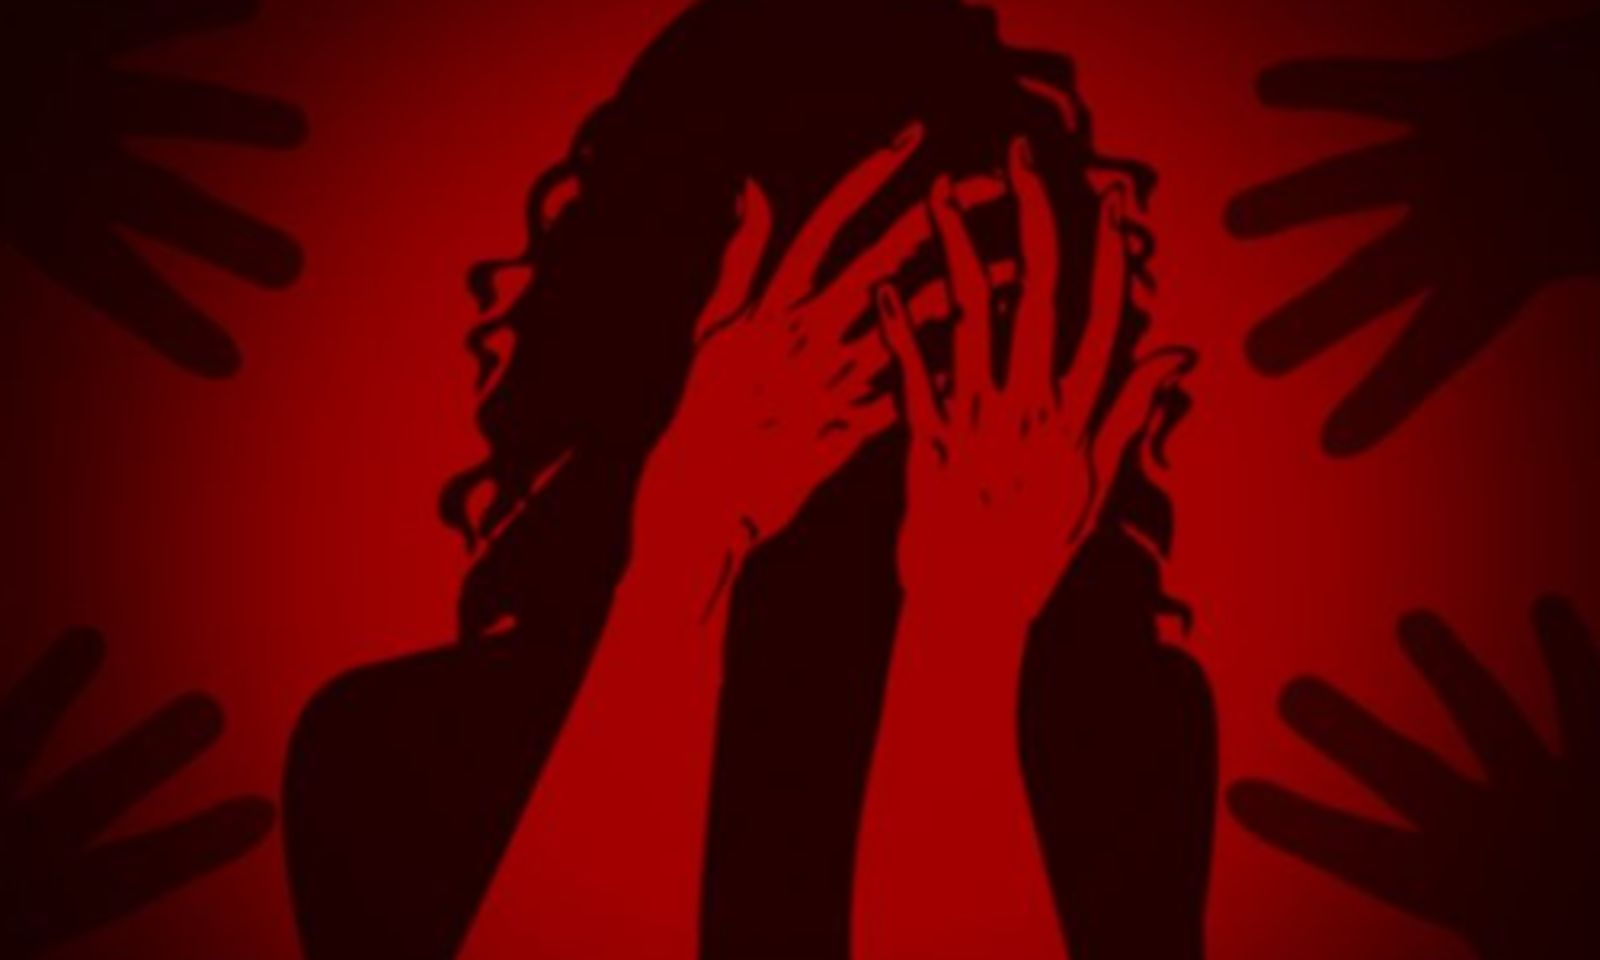 21-year-old woman gang raped and assaulted by five men in Noida, 4 arrested